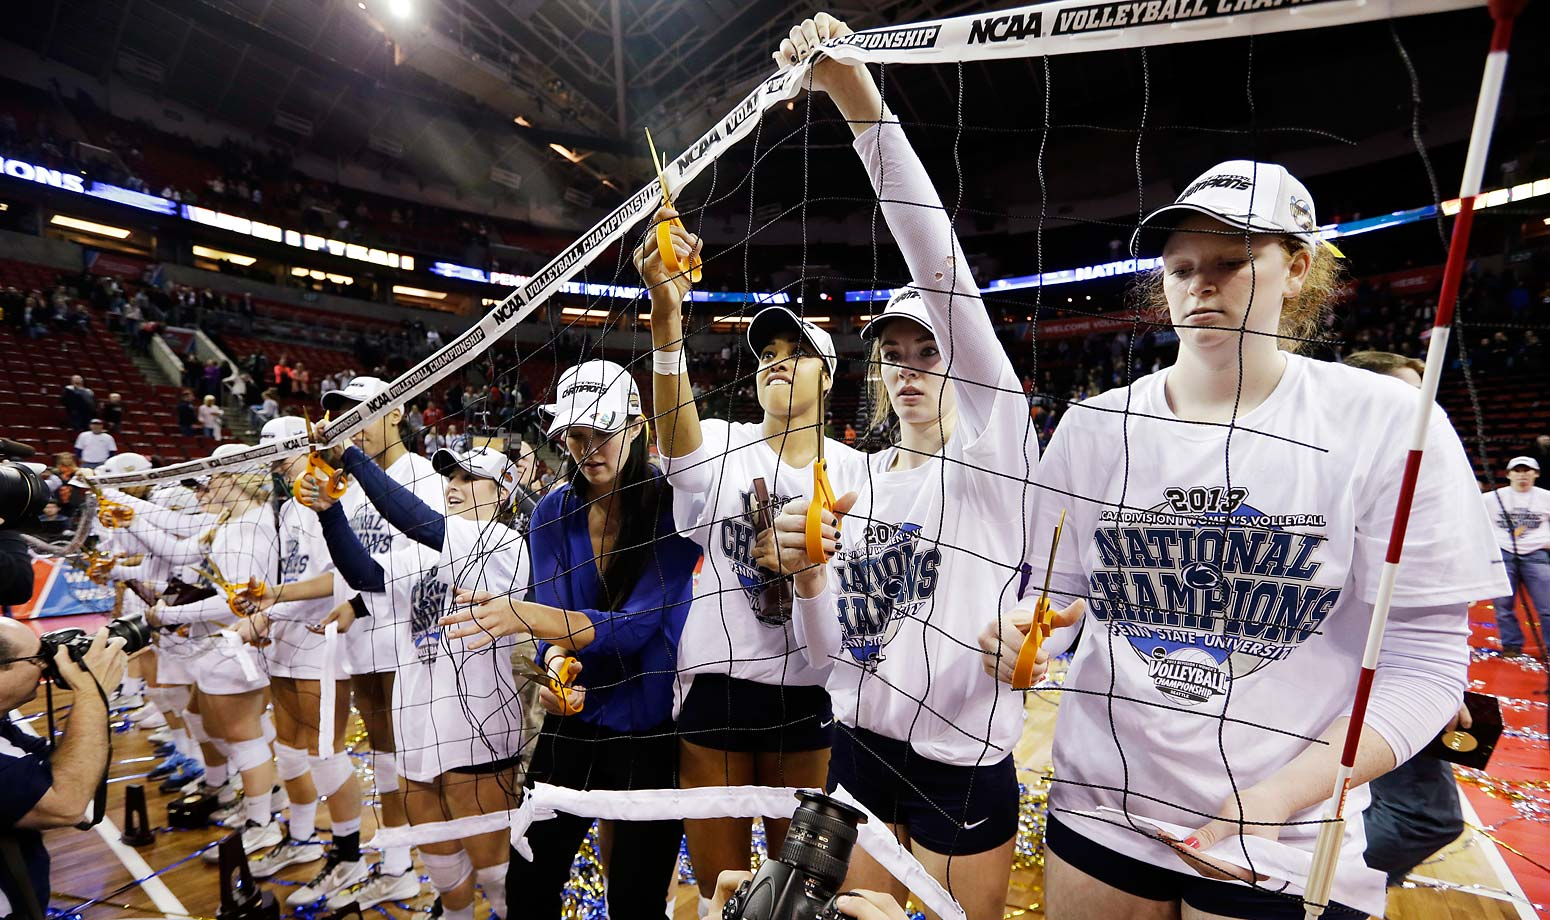 Penn State players cut down the net after the women's team won their sixth national championship, including their fourth in a row.